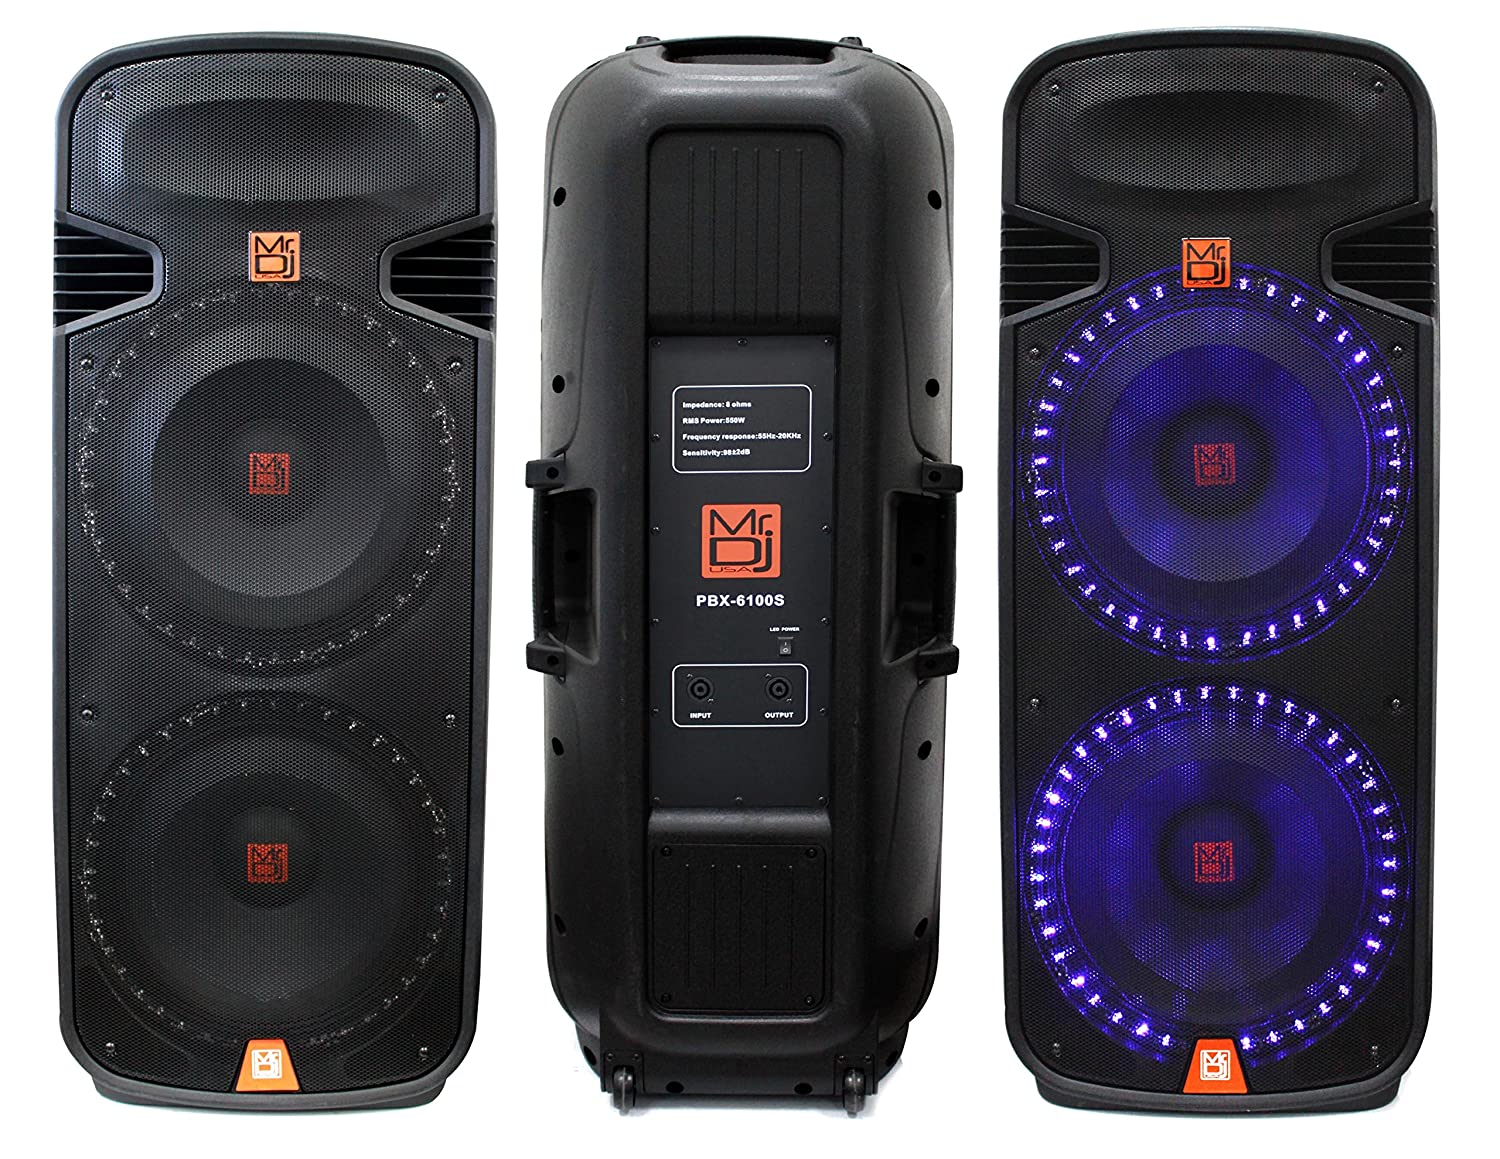 Mr Dj Pbx6100s Dual 15 Inch 2 Way 5000 Watt Passive Amplifier Using Tda2009a 12 15x2 Audio Speaker With Built In Accent Led Lighting Musical Instruments